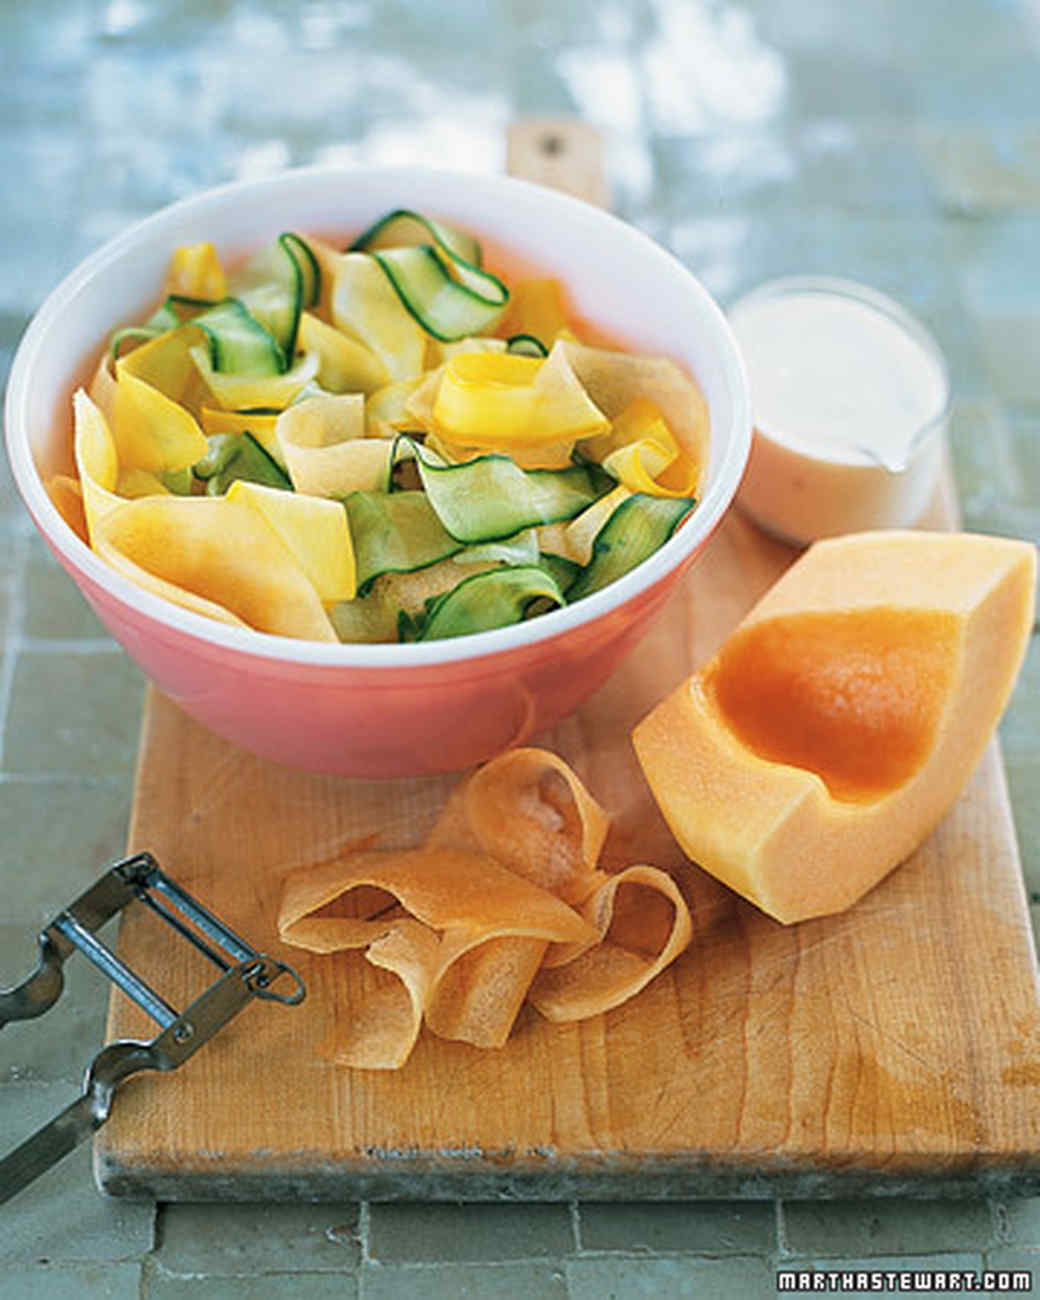 Cucumber, Cantaloupe, and Squash Salad